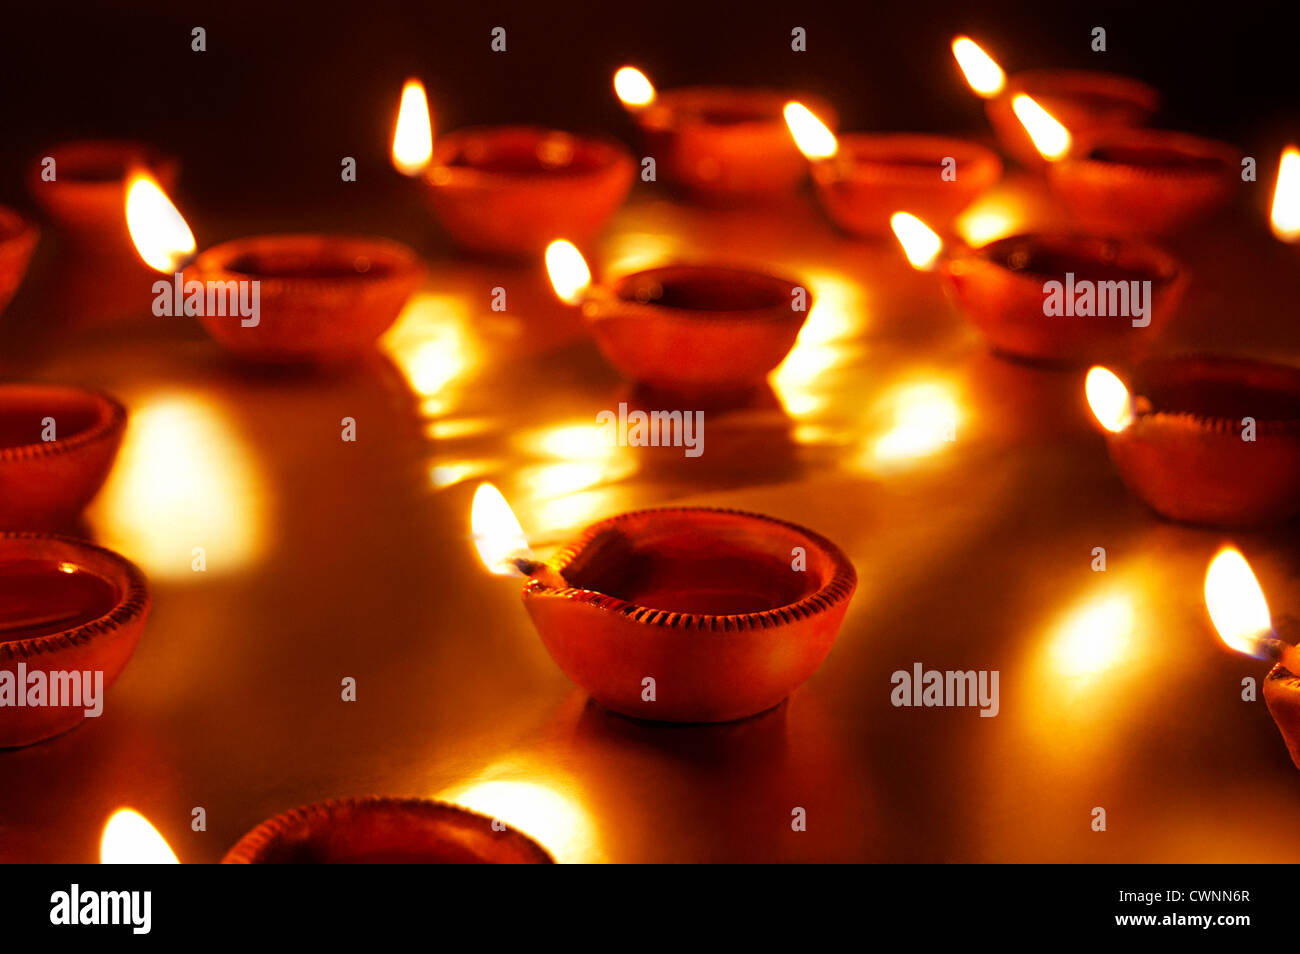 Diya's are burning on Diwali Festival India - Stock Image